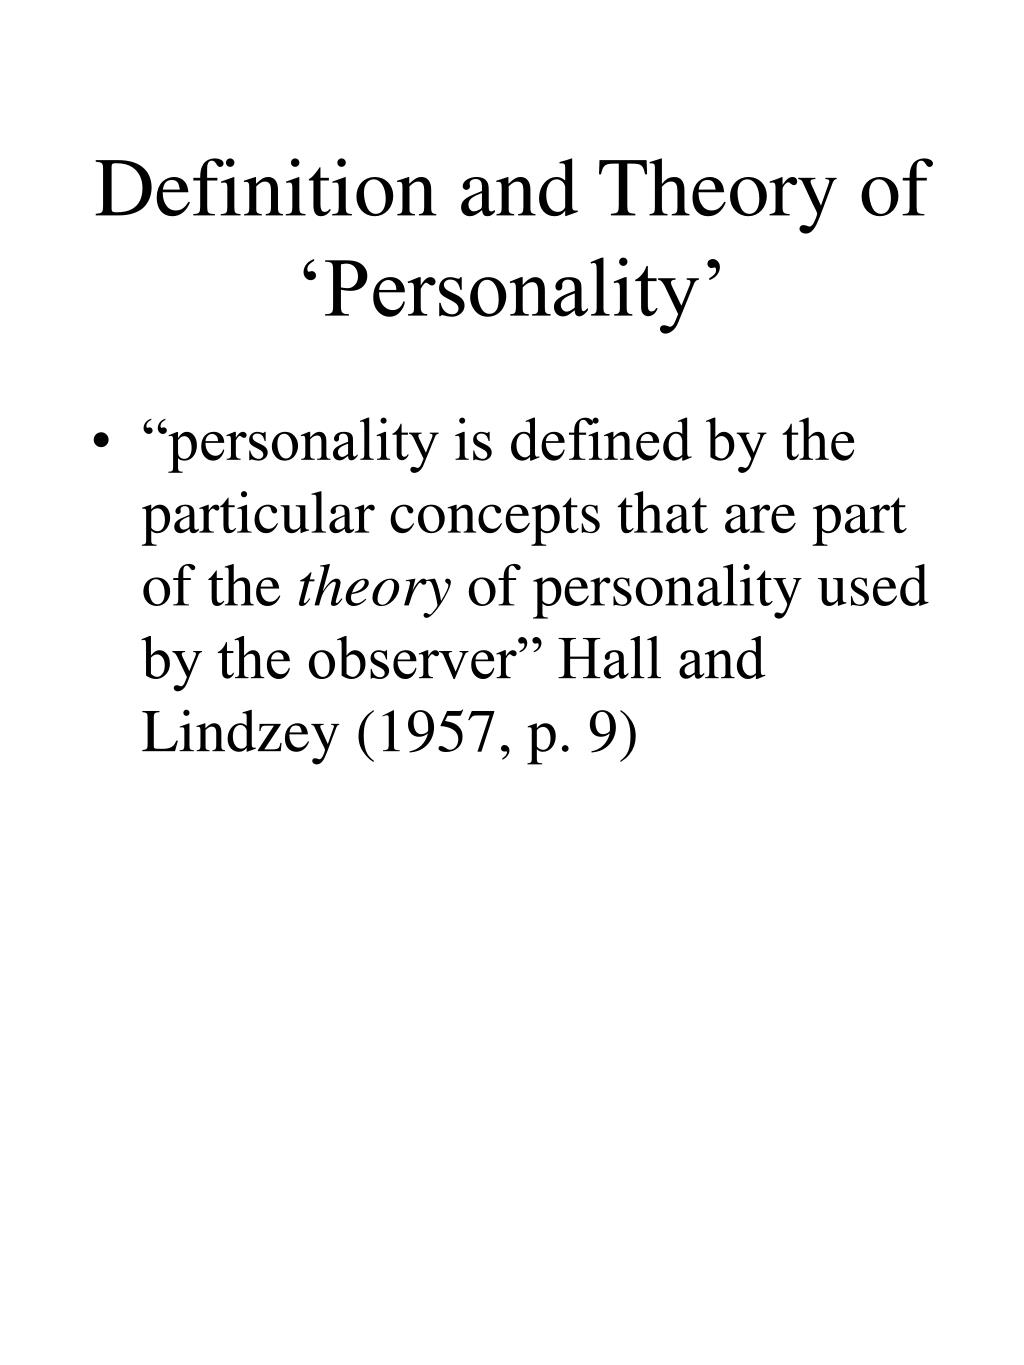 Definition and Theory of 'Personality'